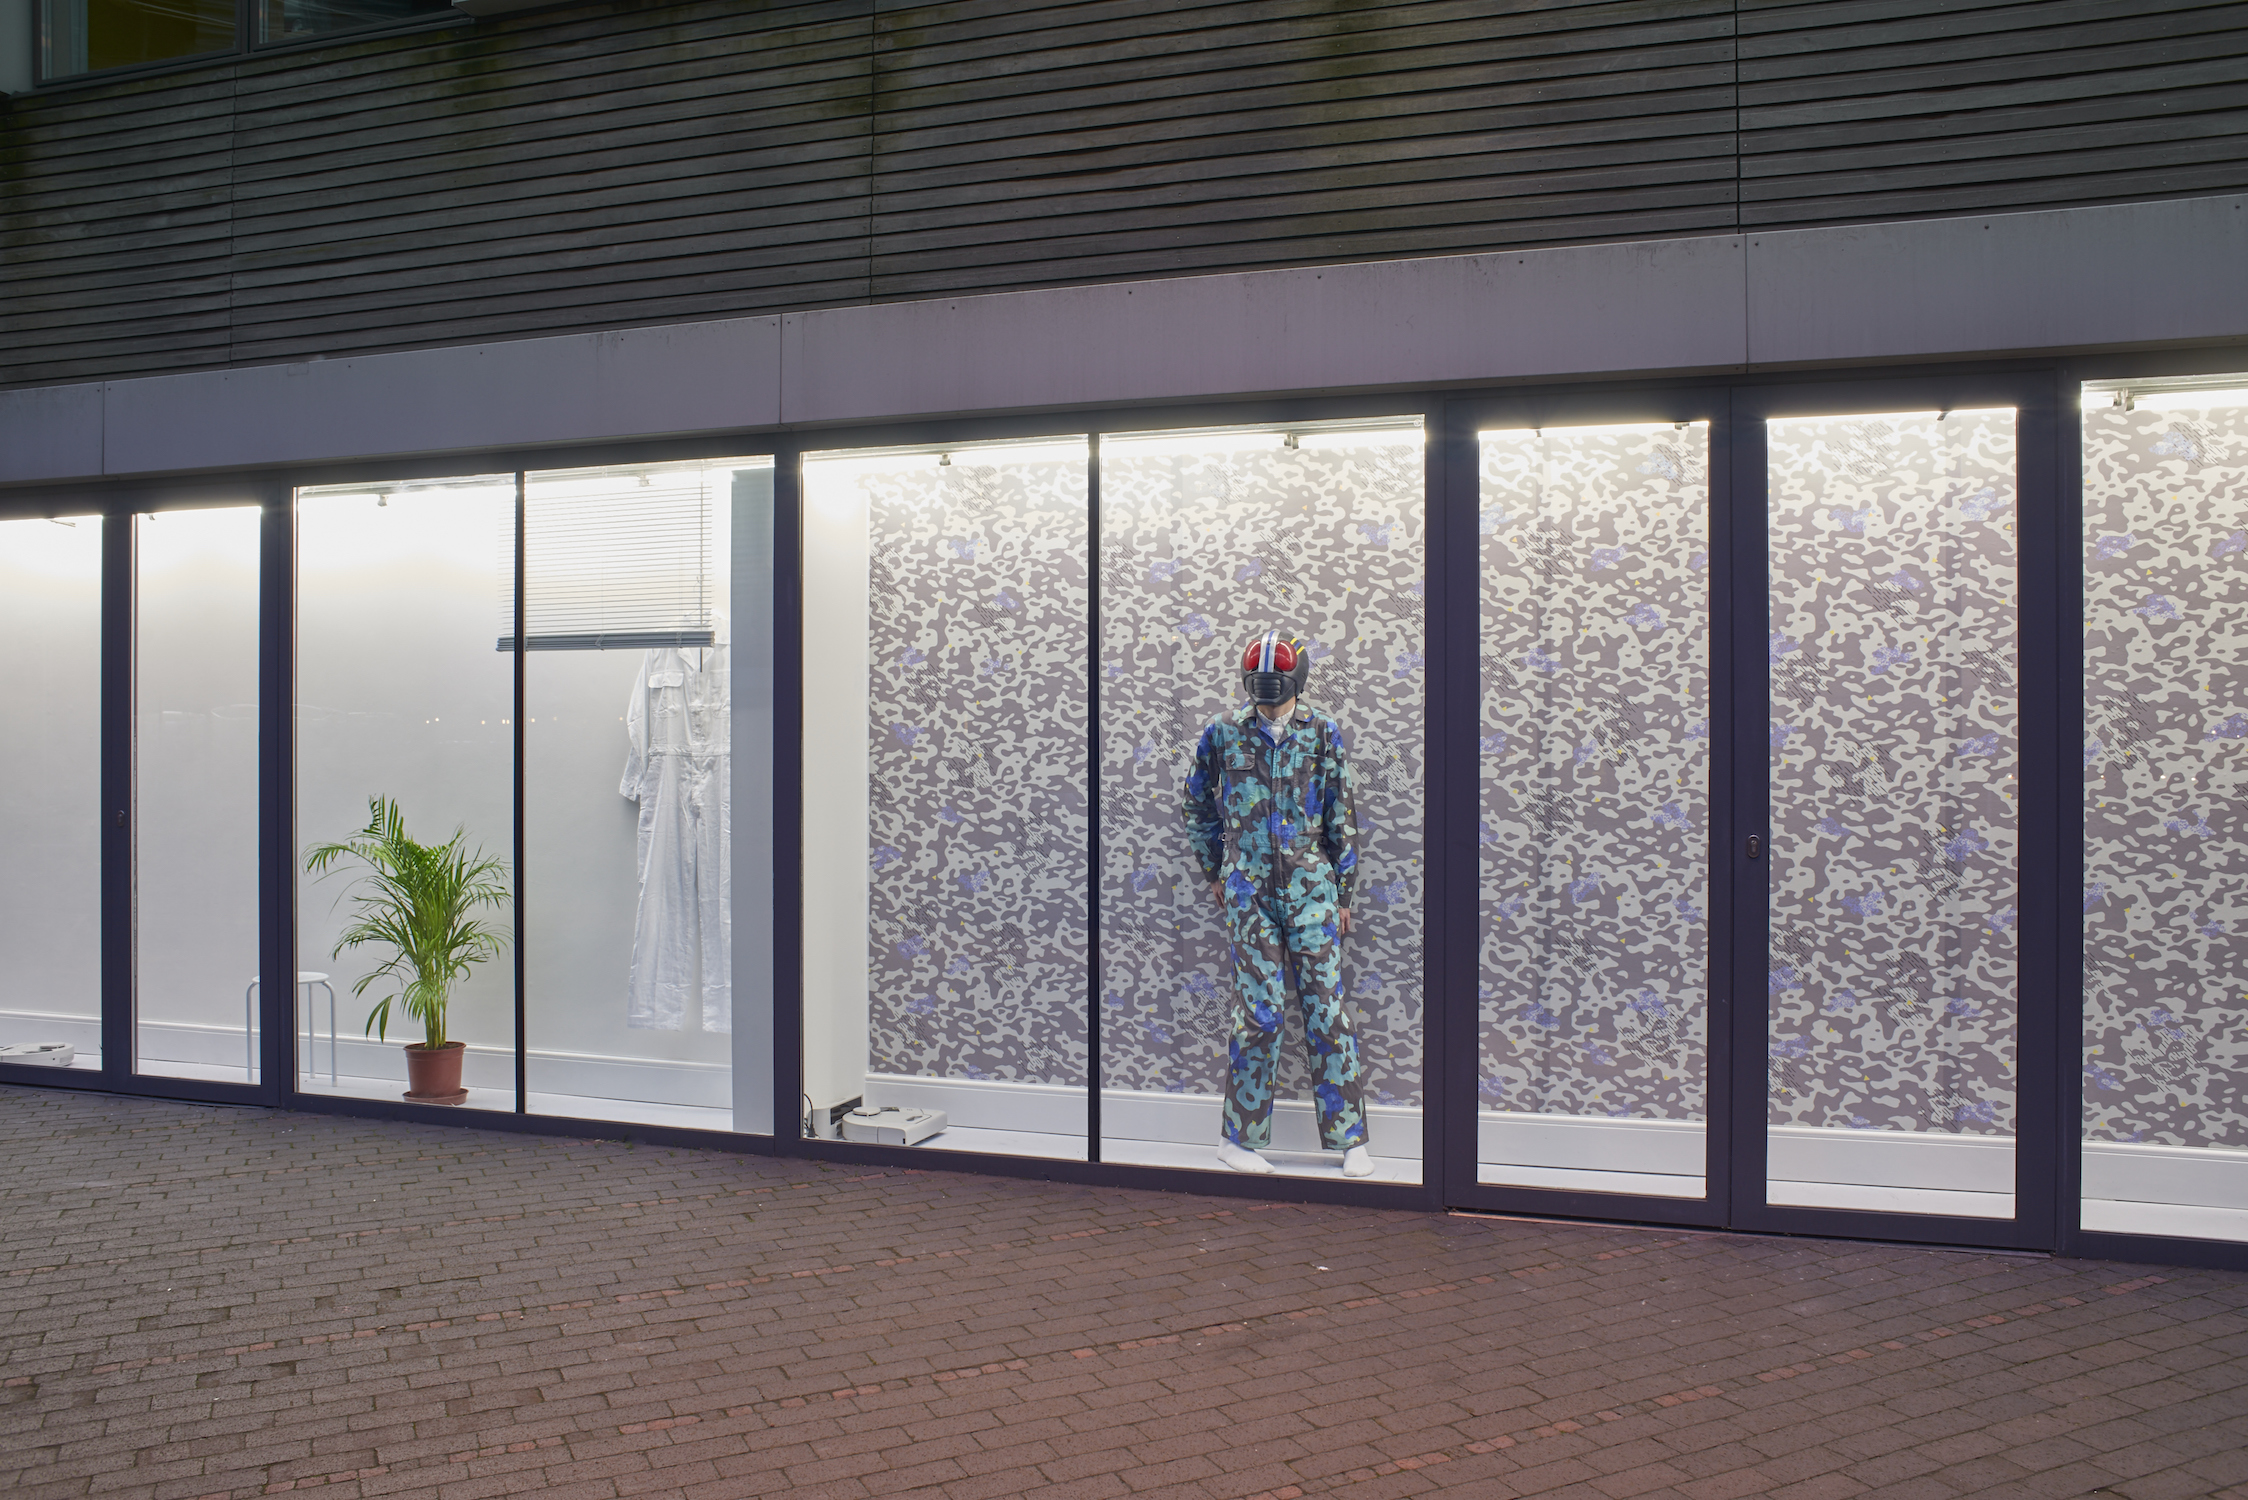 Nadim Abbas, Camoufleur, 2017. Mixed media installation and performance. Dimensions variable. Installation view. VITRINE, London. Photographer: Jonathan Bassett.